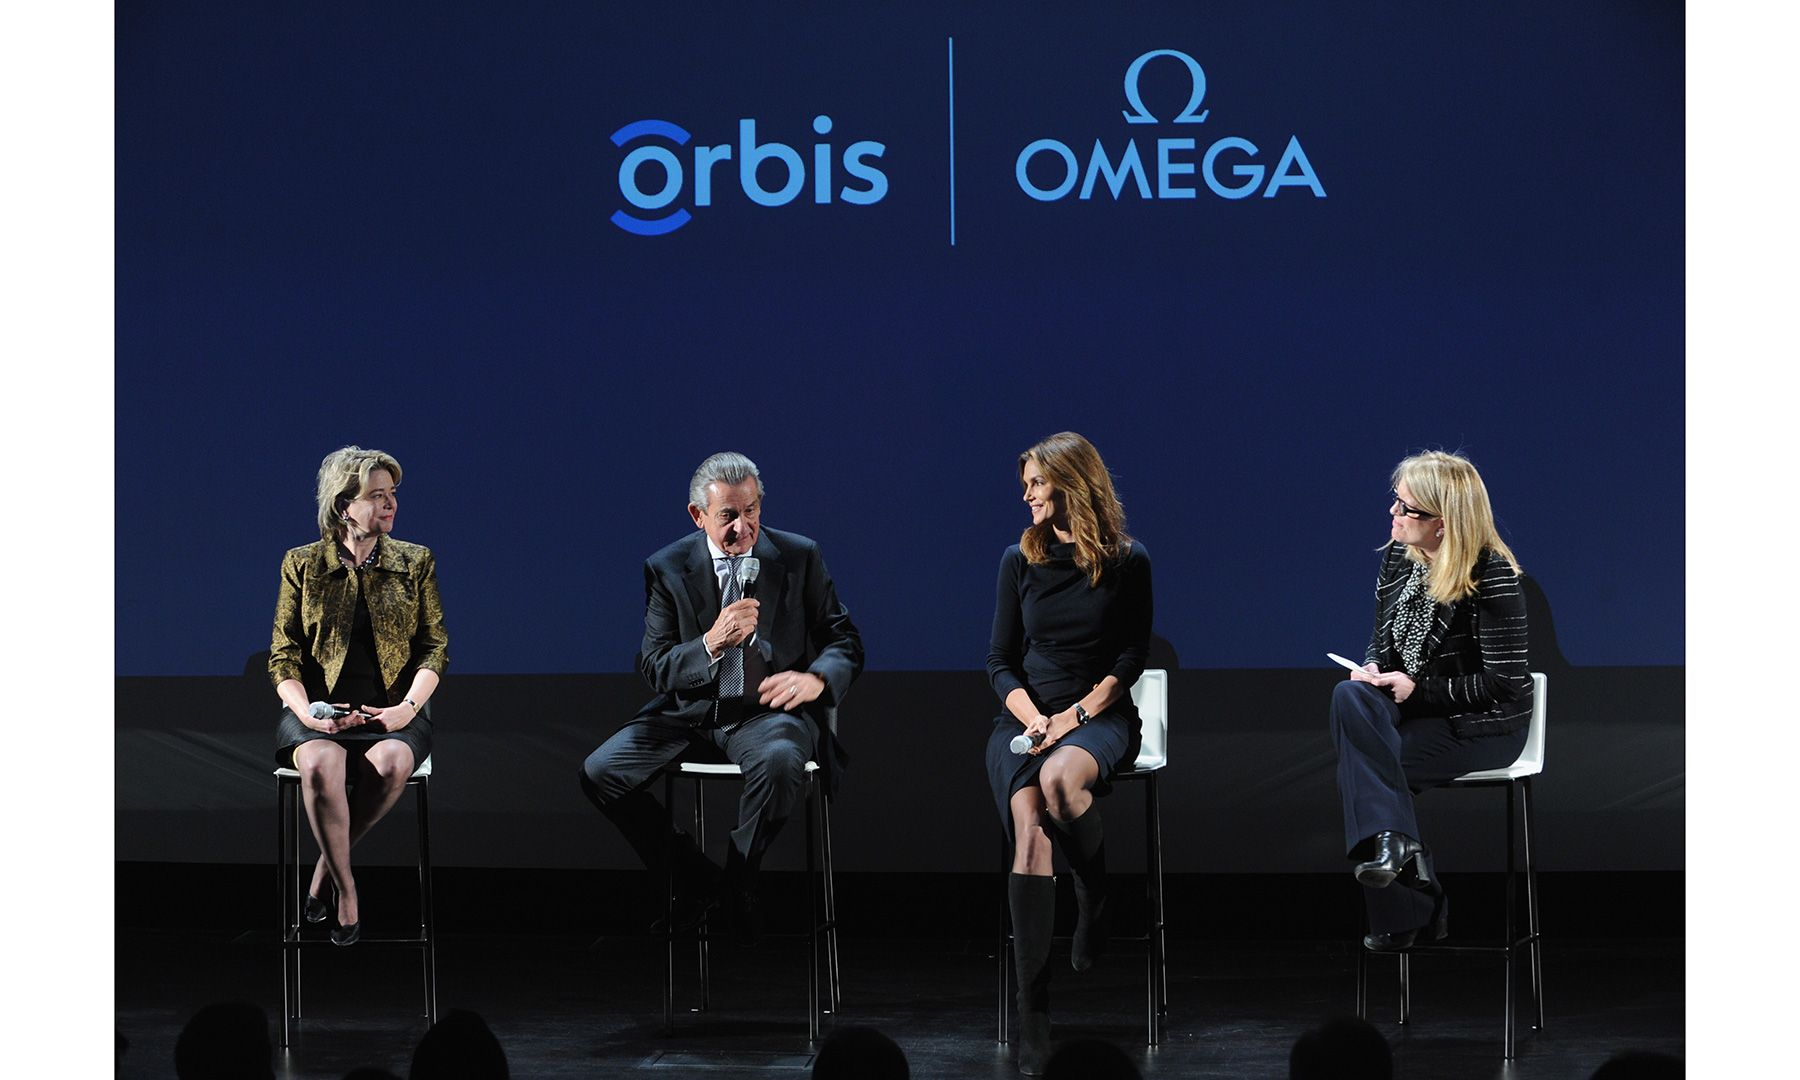 New Yorkers celebrated the premiere of the documentary The Hospital in the Sky—starring Cindy Crawford—in a private screening event hosted by OMEGA, Jenny Hourihan, Stephen Urquhart, Cindy Crawford, Kate Betts